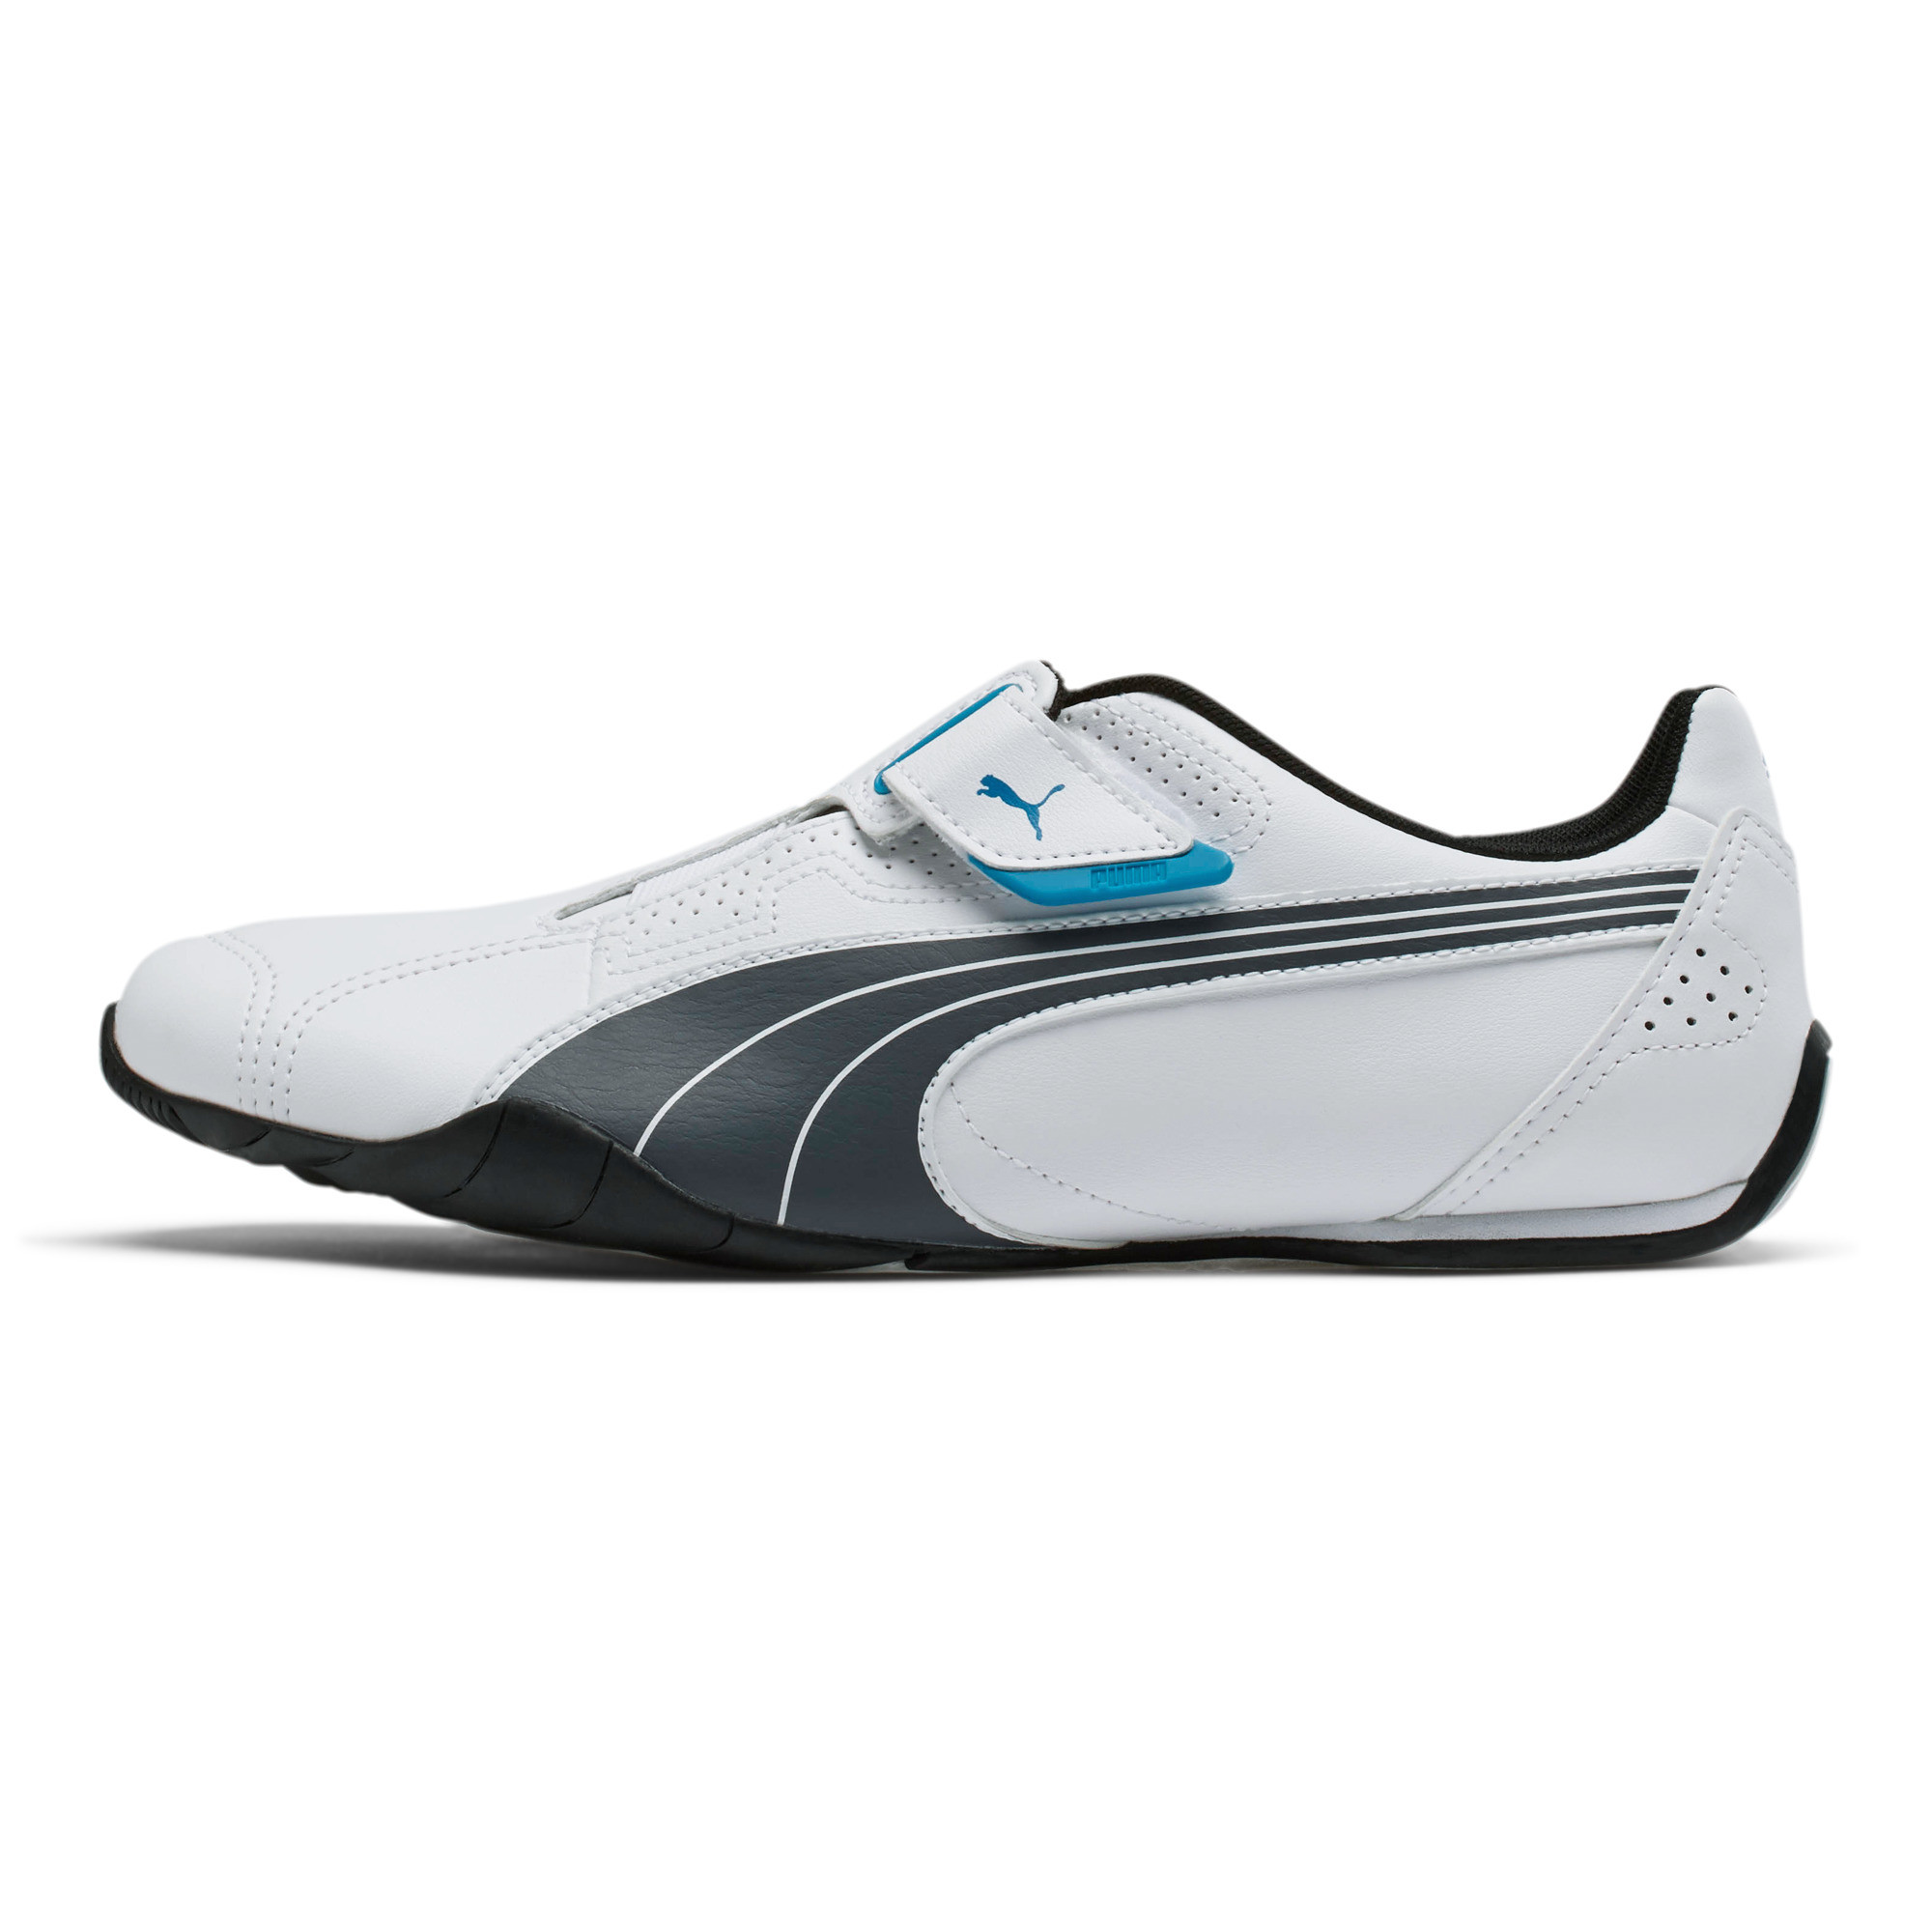 PUMA-Redon-Move-Men-039-s-Shoes-Men-Shoe-Sport-Shoe thumbnail 14